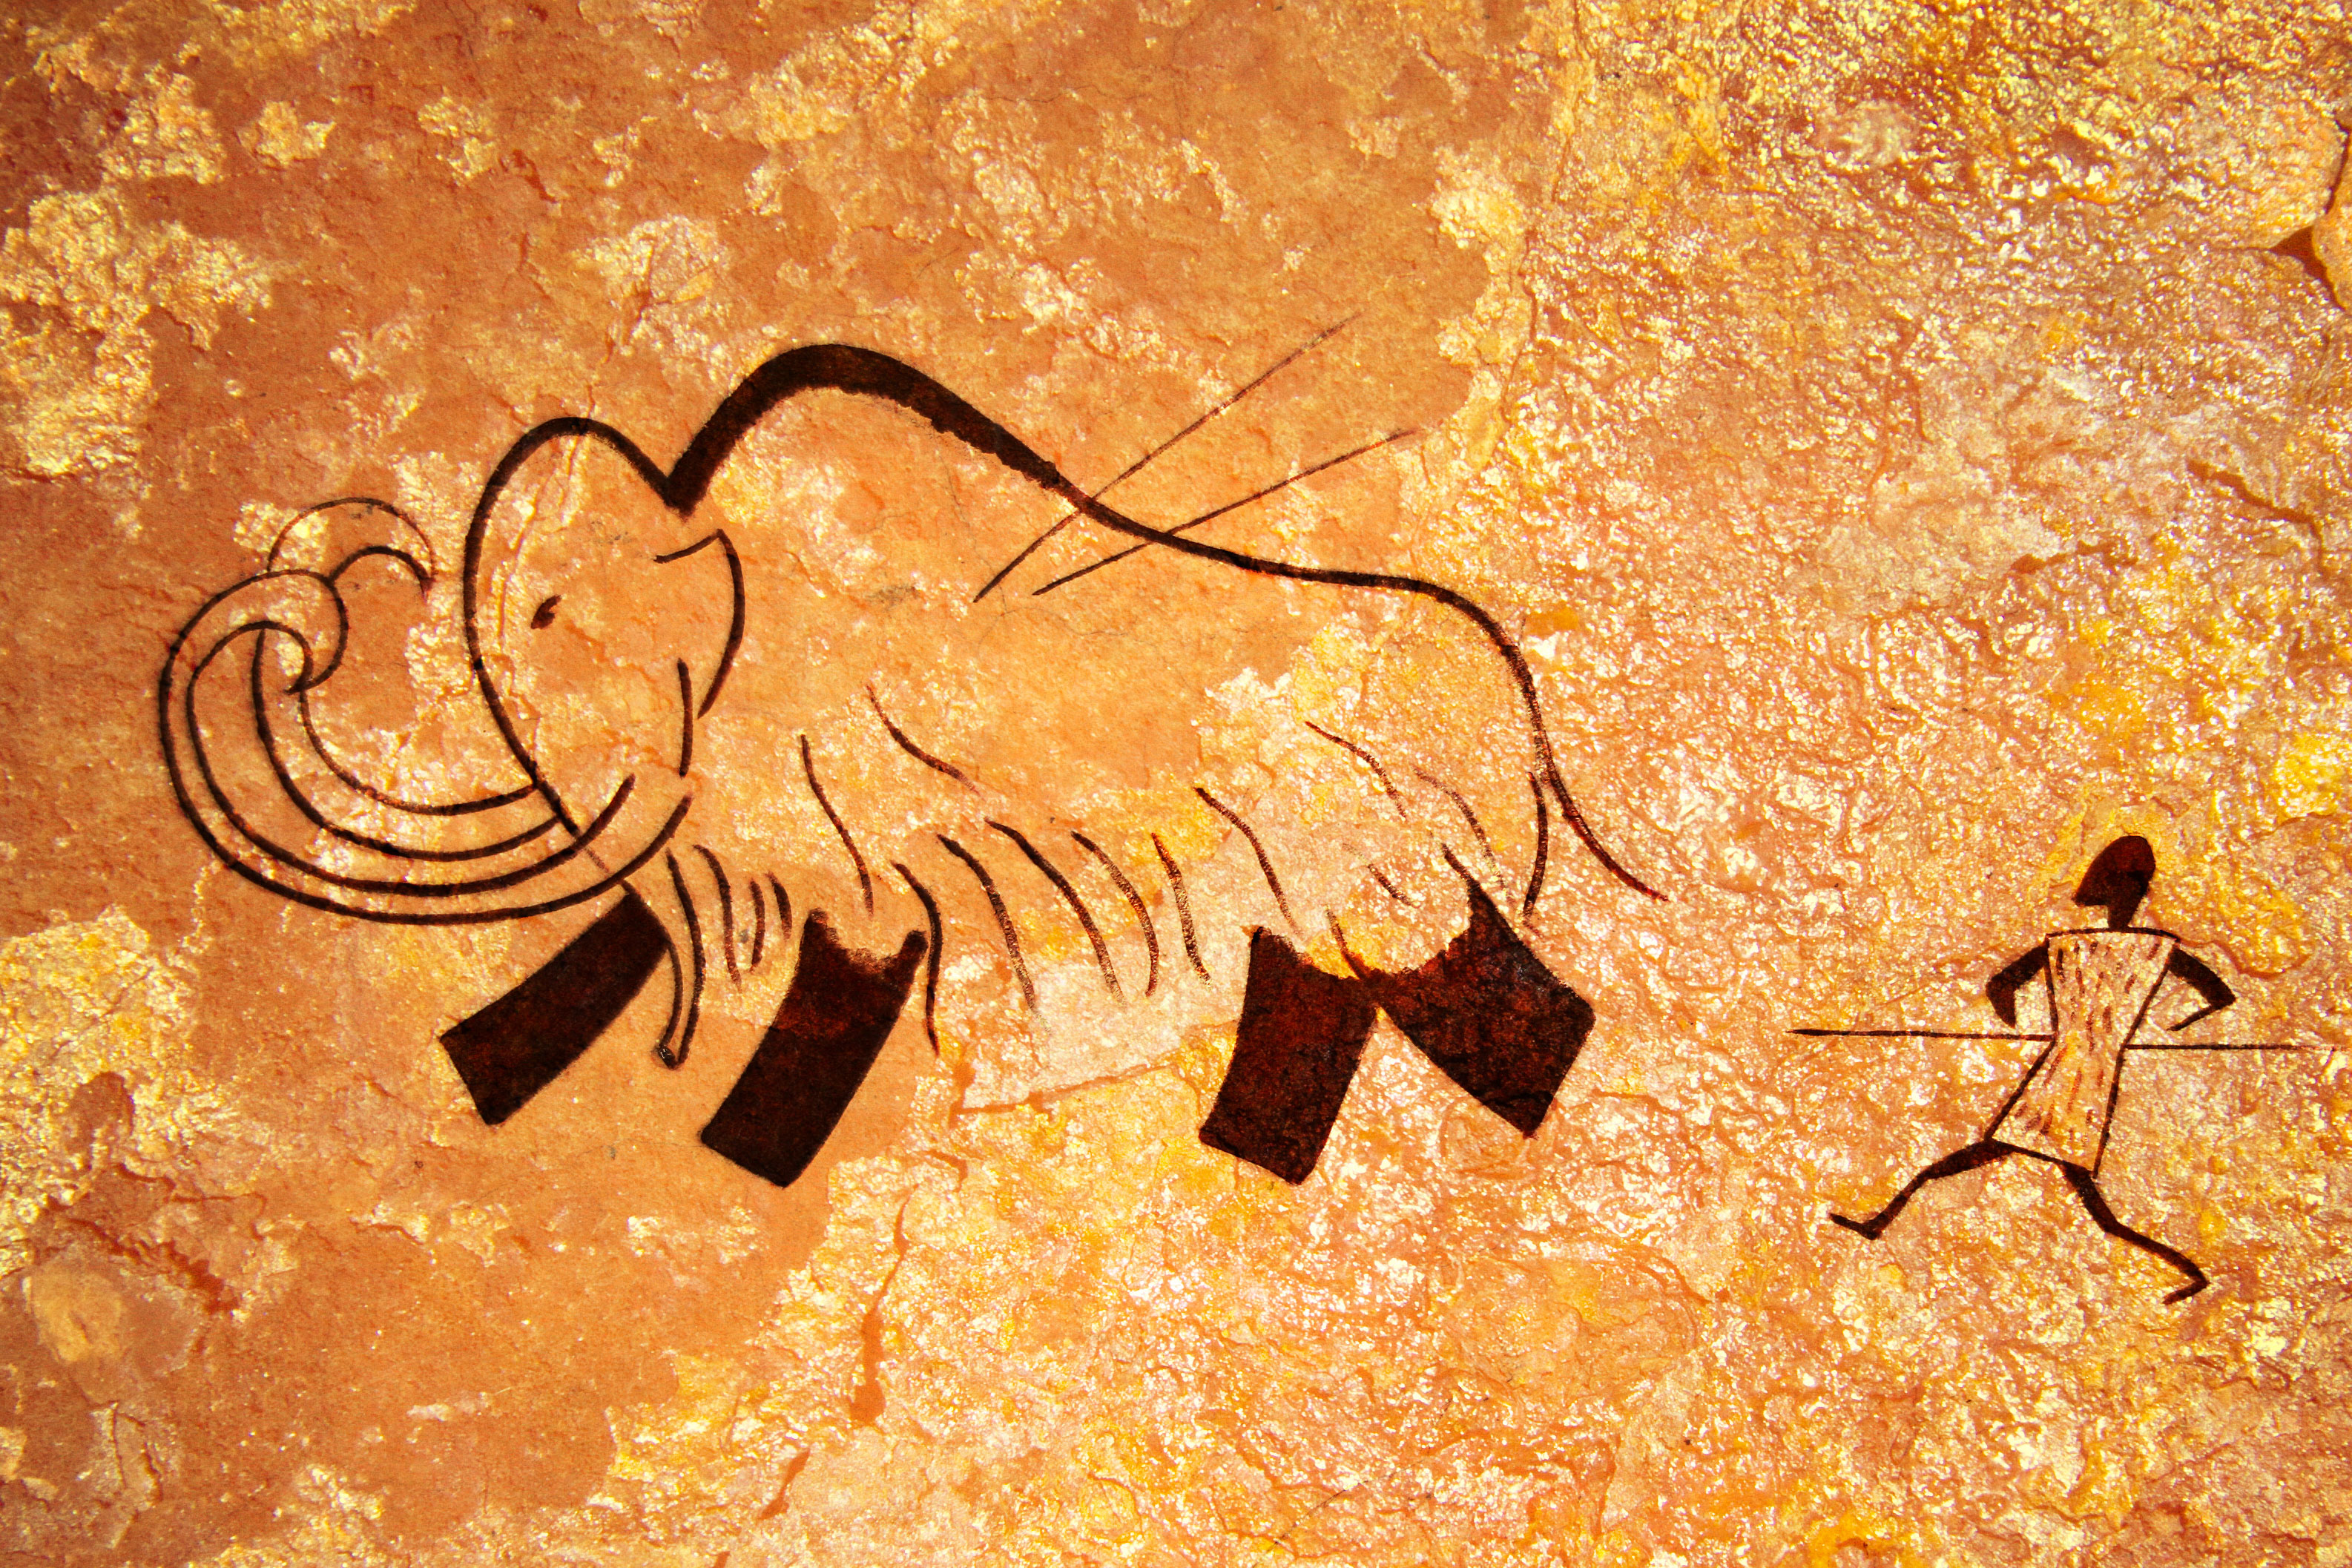 Cave painting of a hunter spearing a wooly mammoth